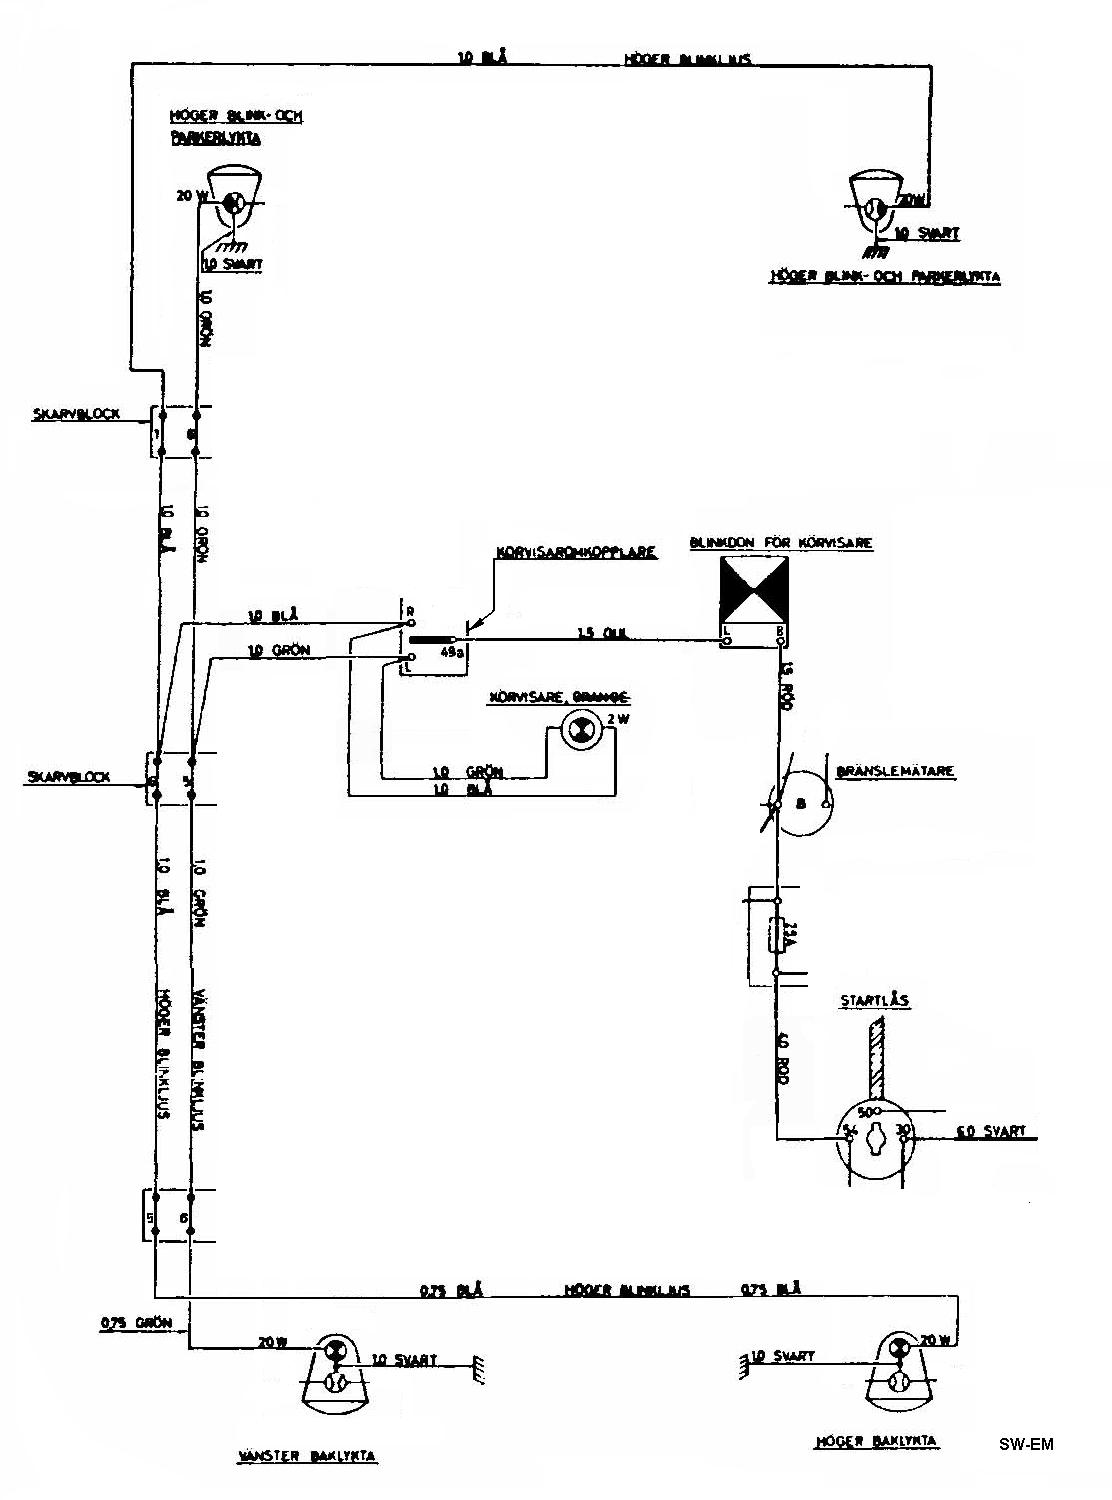 Electrical Wiring Diagram Volvo 544 1989 740 11 1991 940